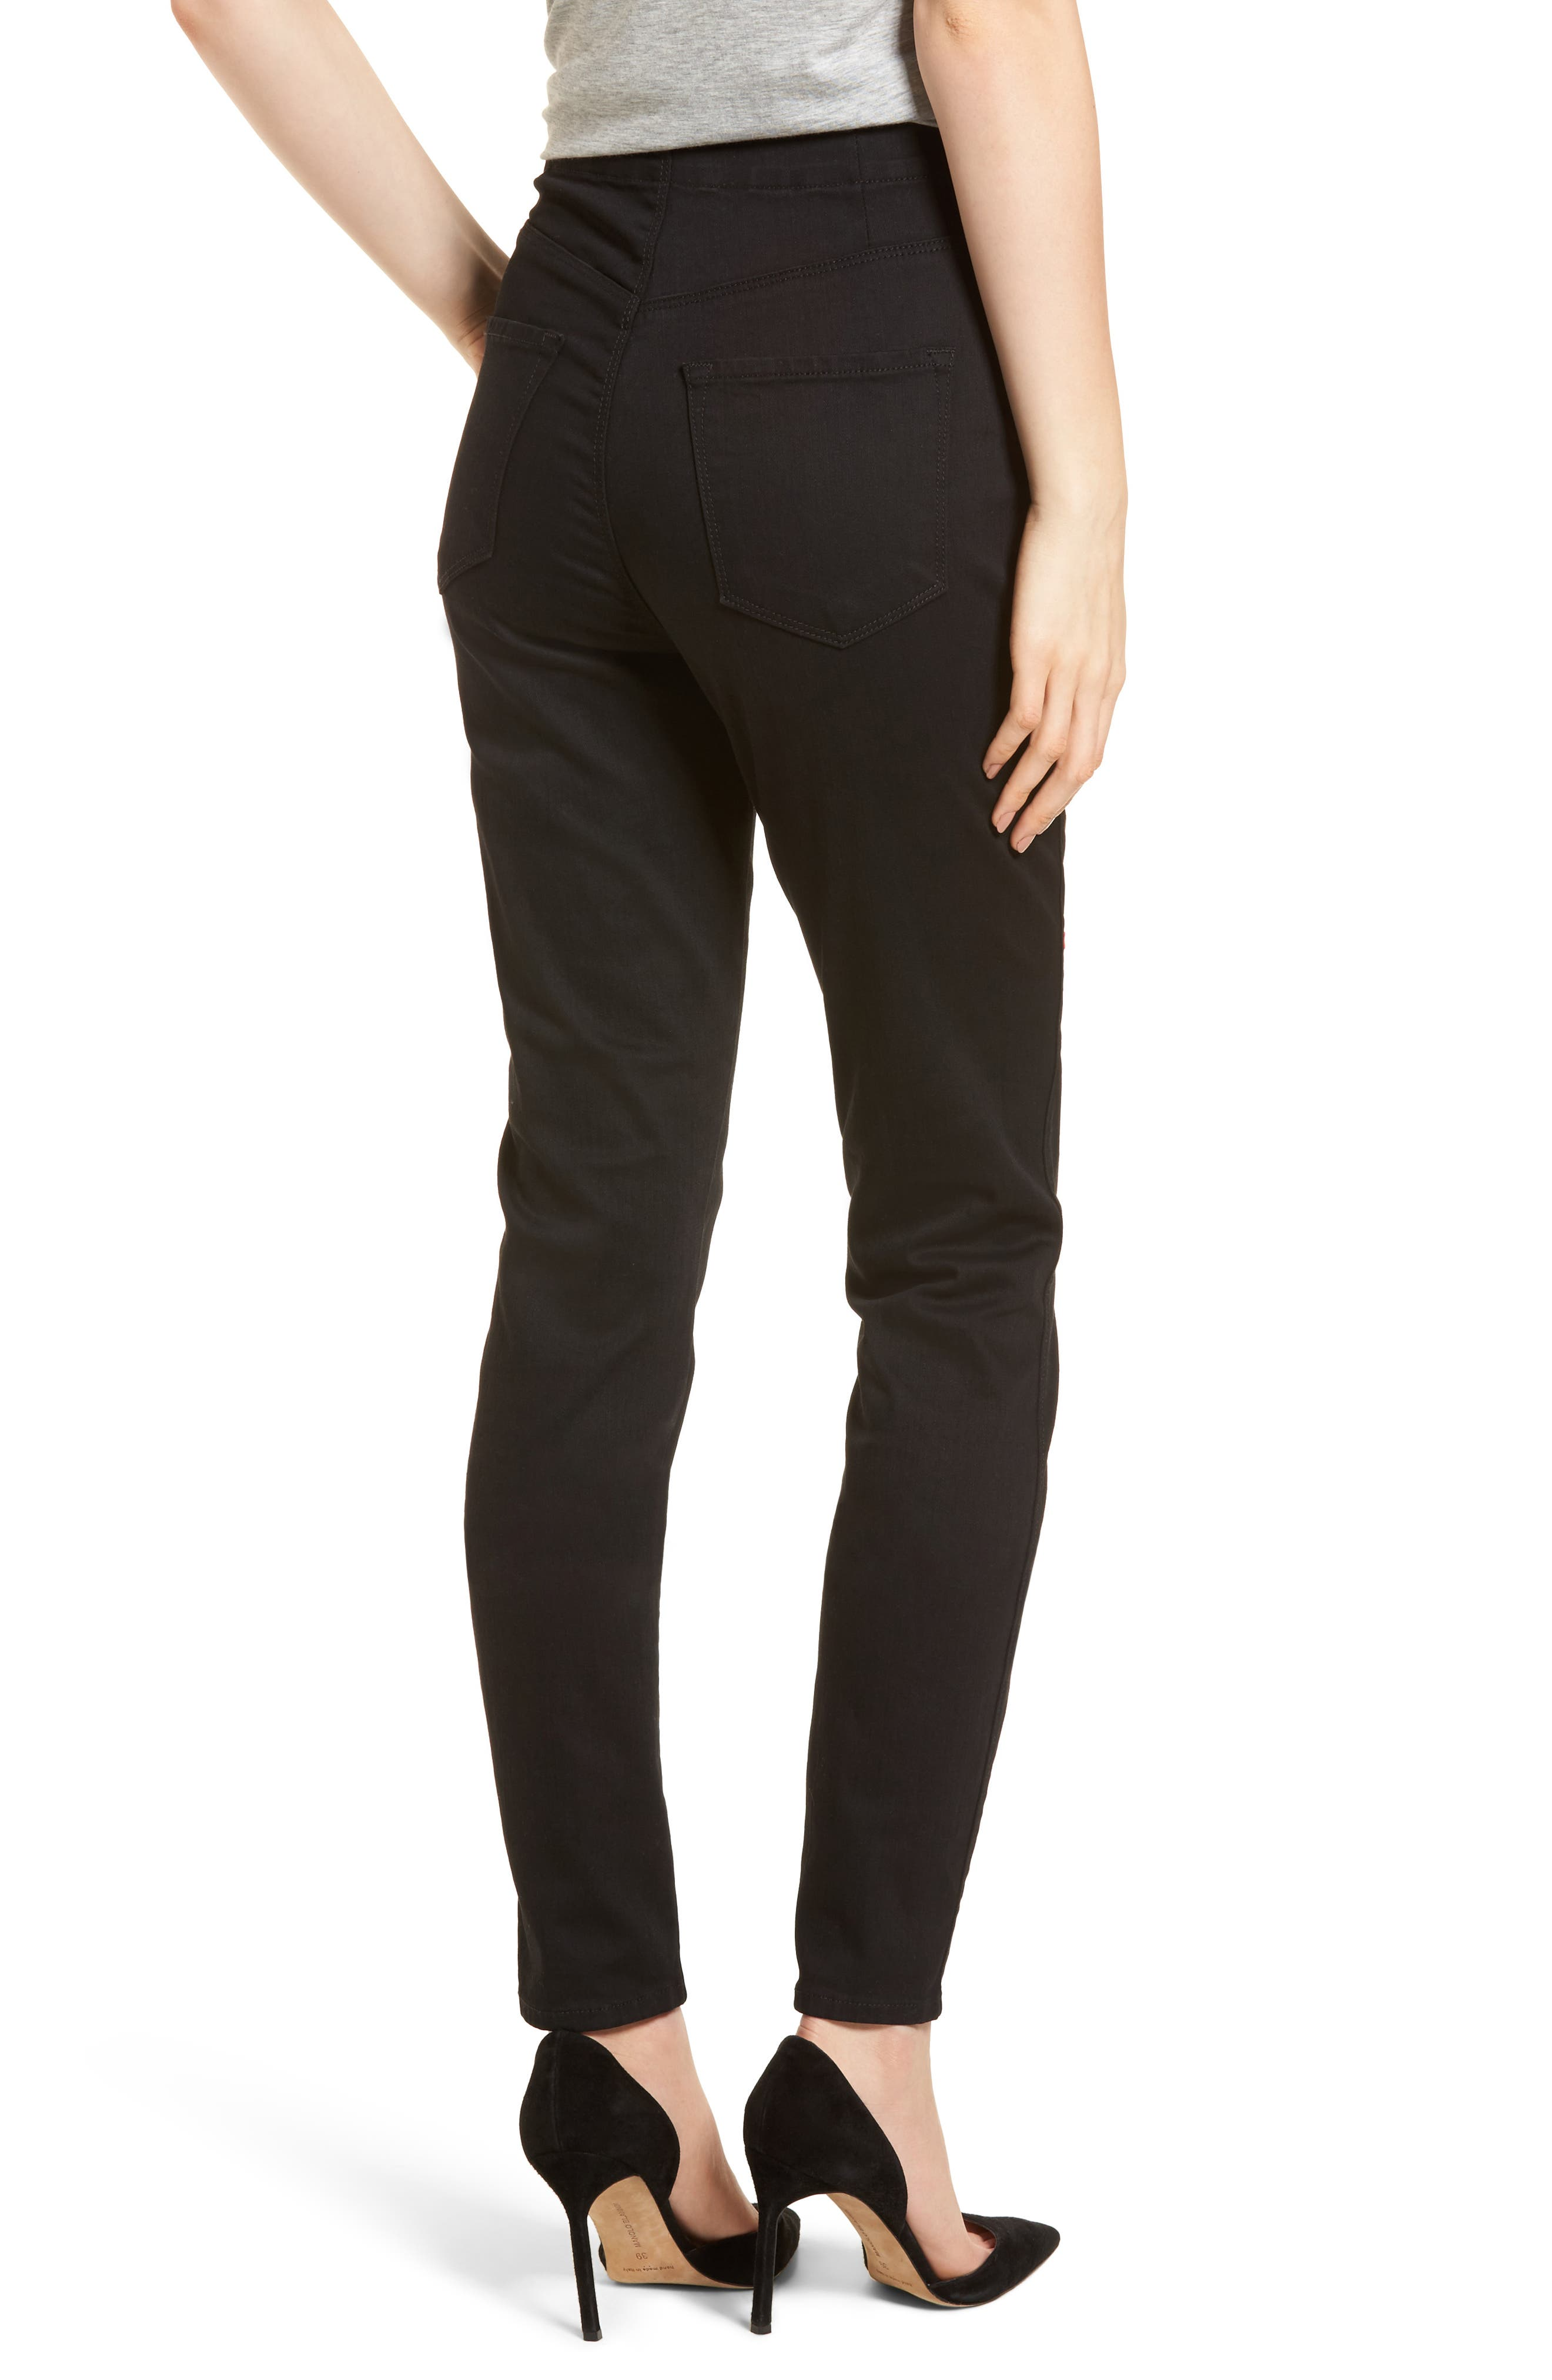 Natasha Photoready High Waist Skinny Jeans,                             Alternate thumbnail 2, color,                             Vanity